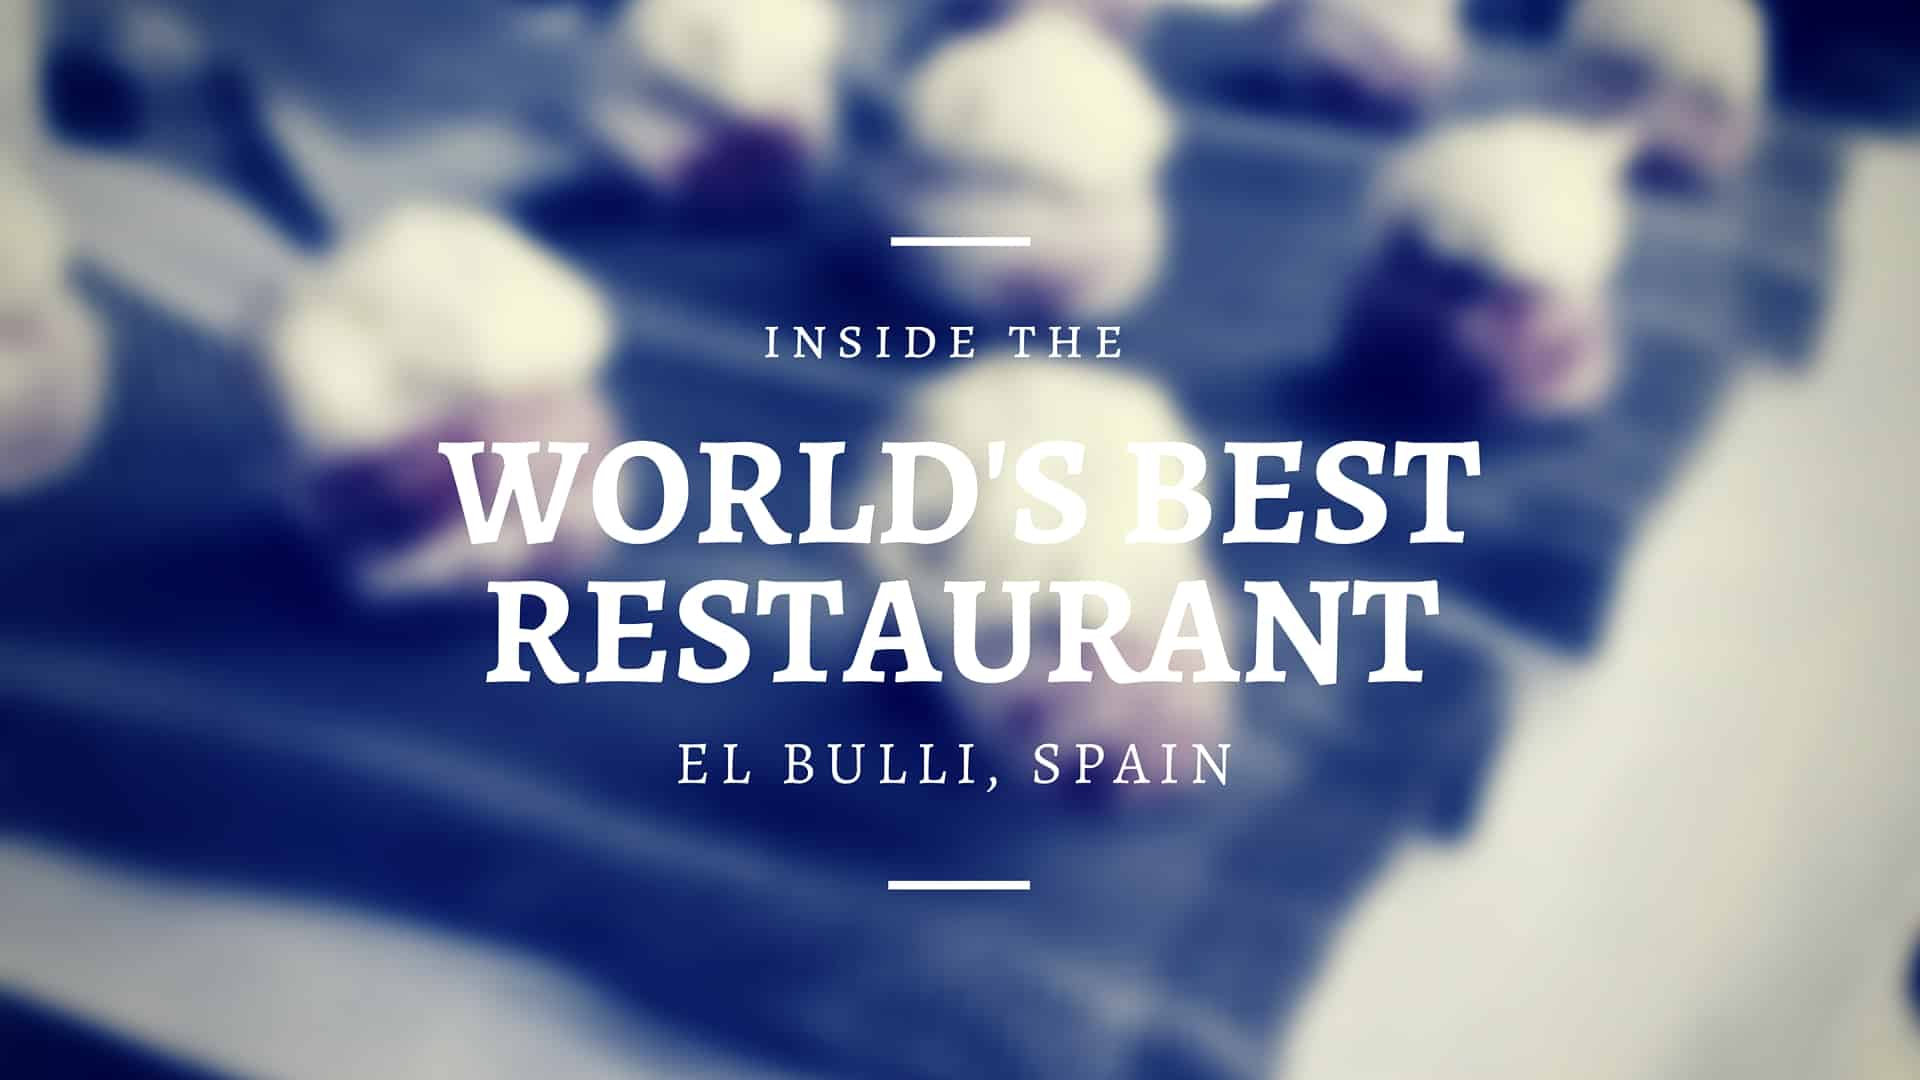 Inside the World's Best Restaurant